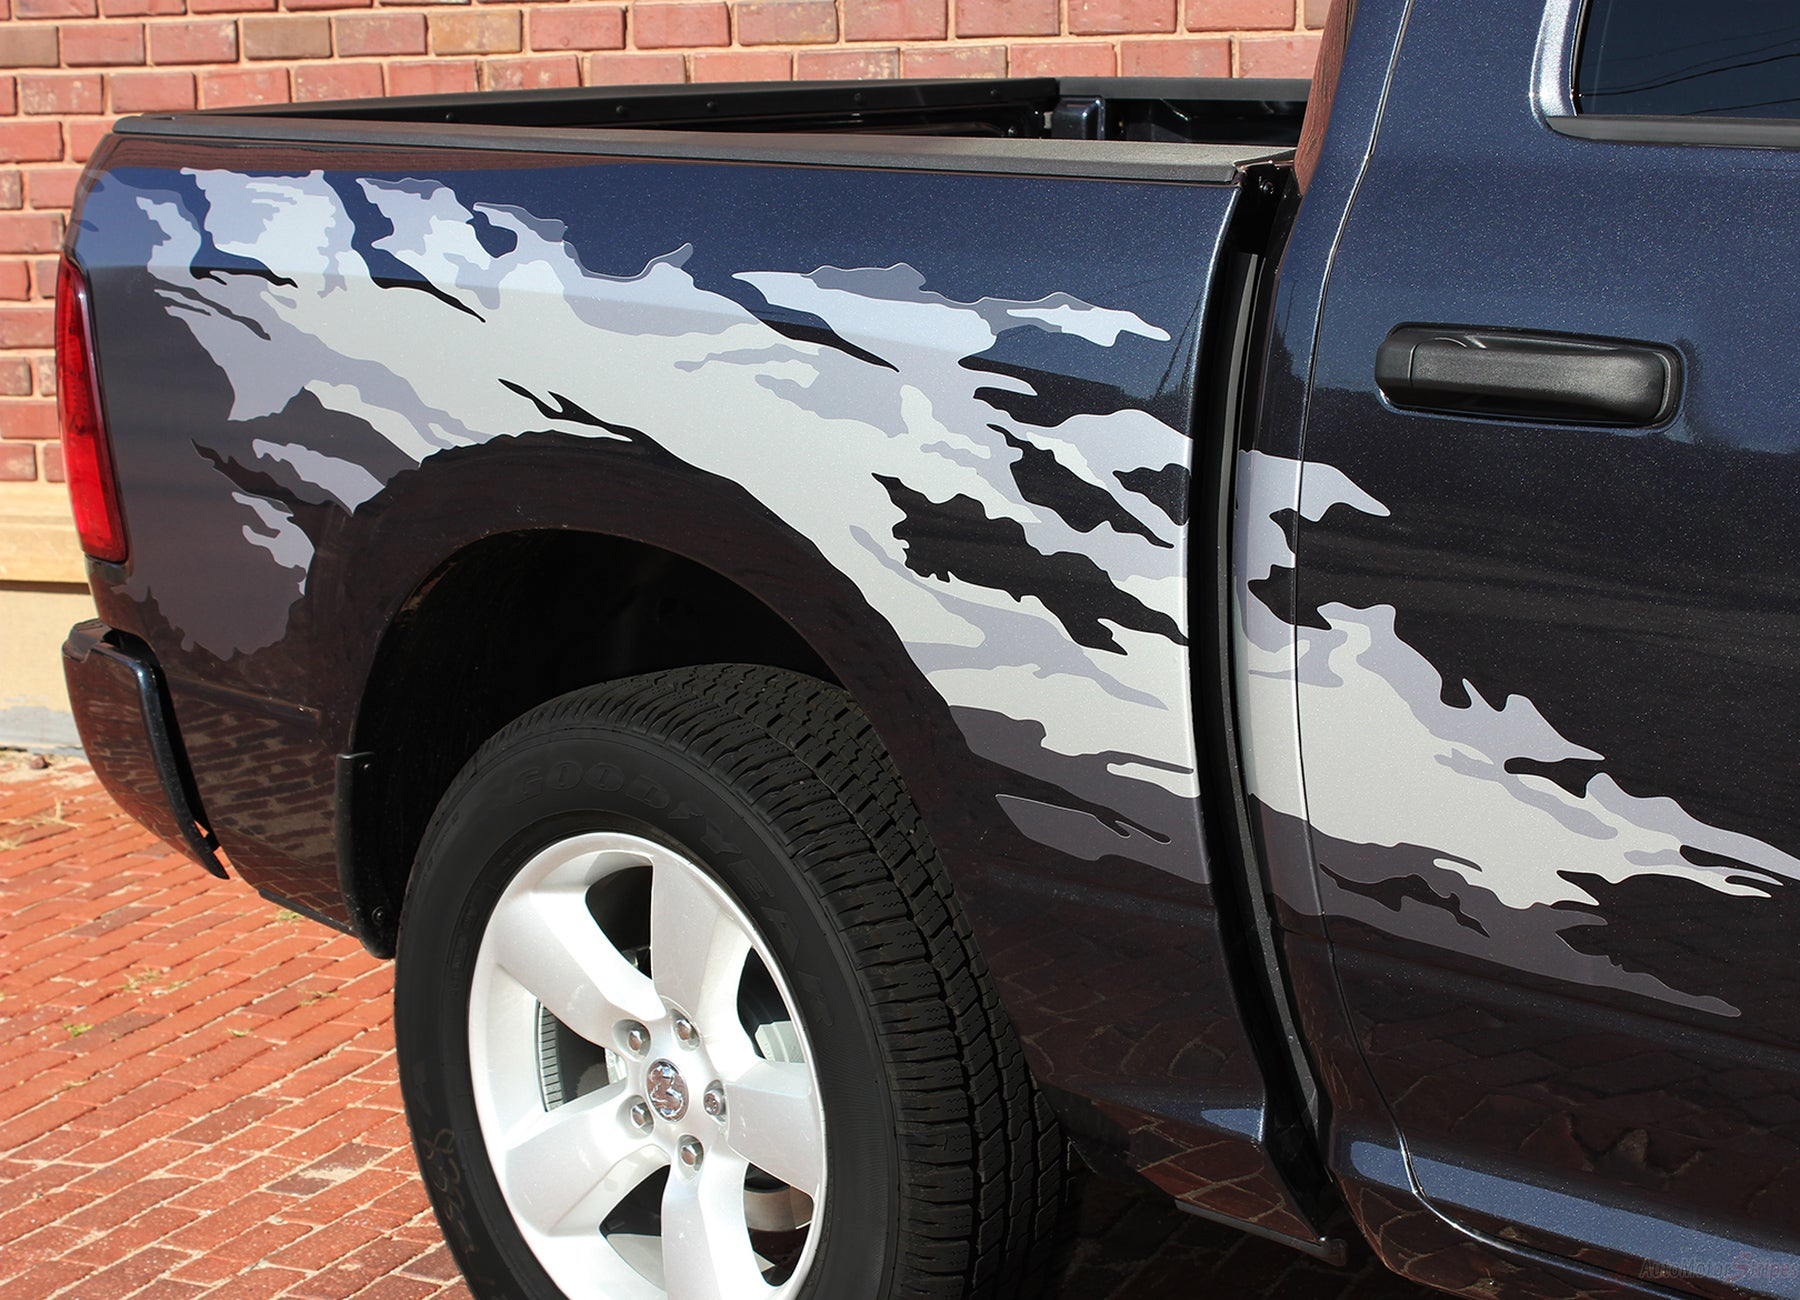 2009 2018 Dodge Ram Bed Graphics Rage Multi Color Digital Print Decals Auto Motor Stripes Decals Vinyl Graphics And 3m Striping Kits